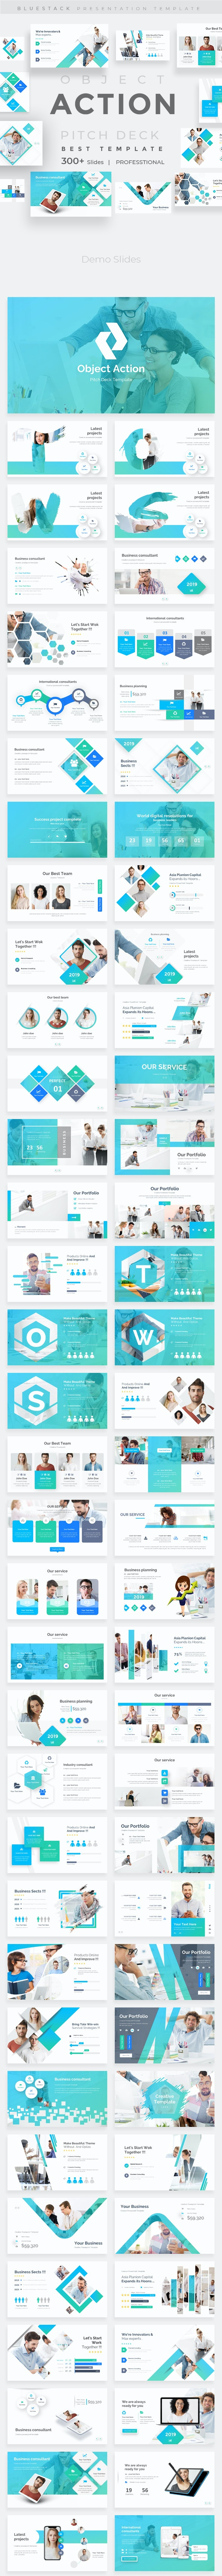 Object Action Pitch Deck Powerpoint Template - Business PowerPoint Templates